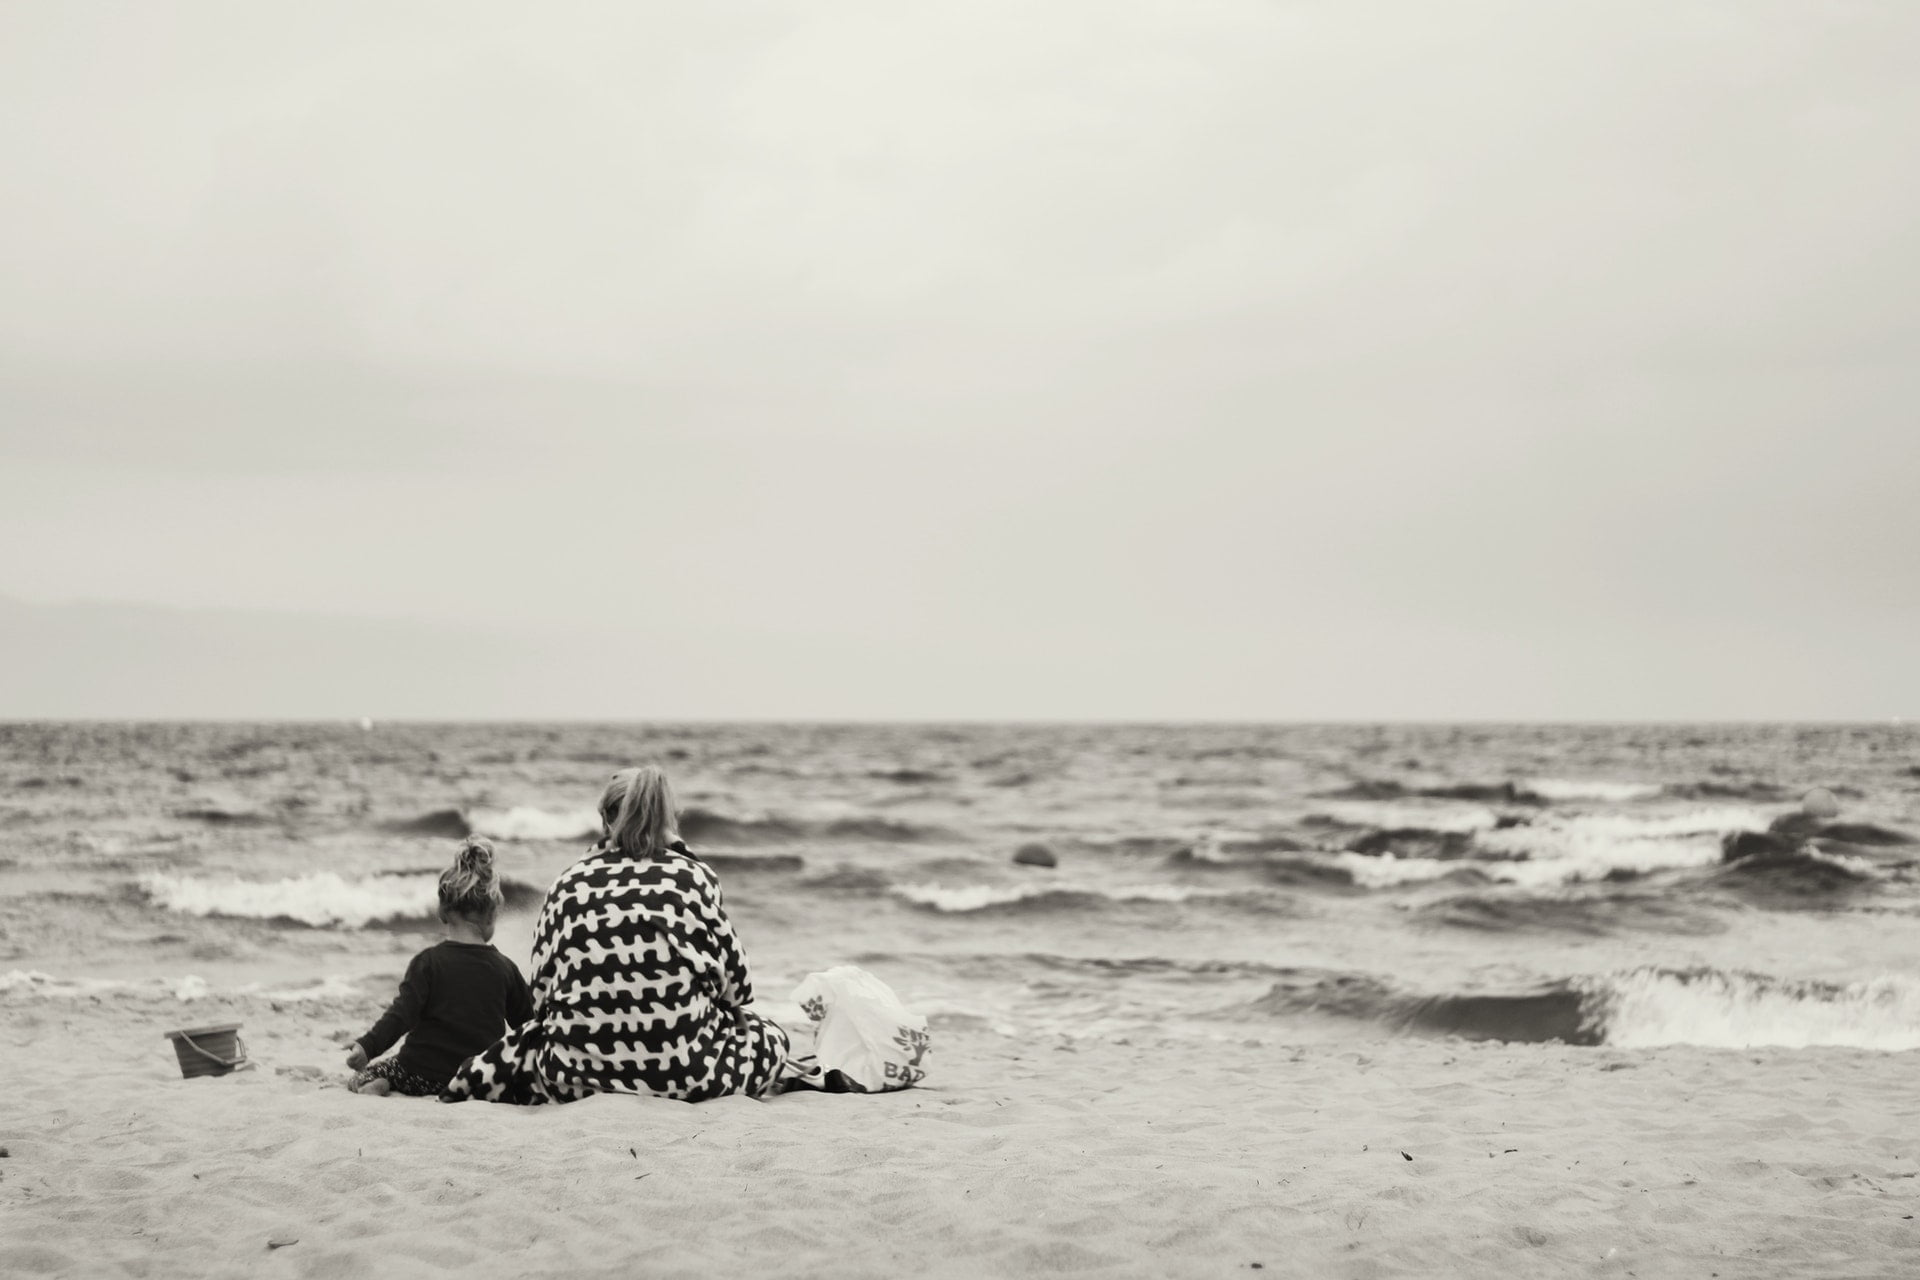 woman and child sitting on sand near body of water mother ocean 1 離|藍雀一行詩